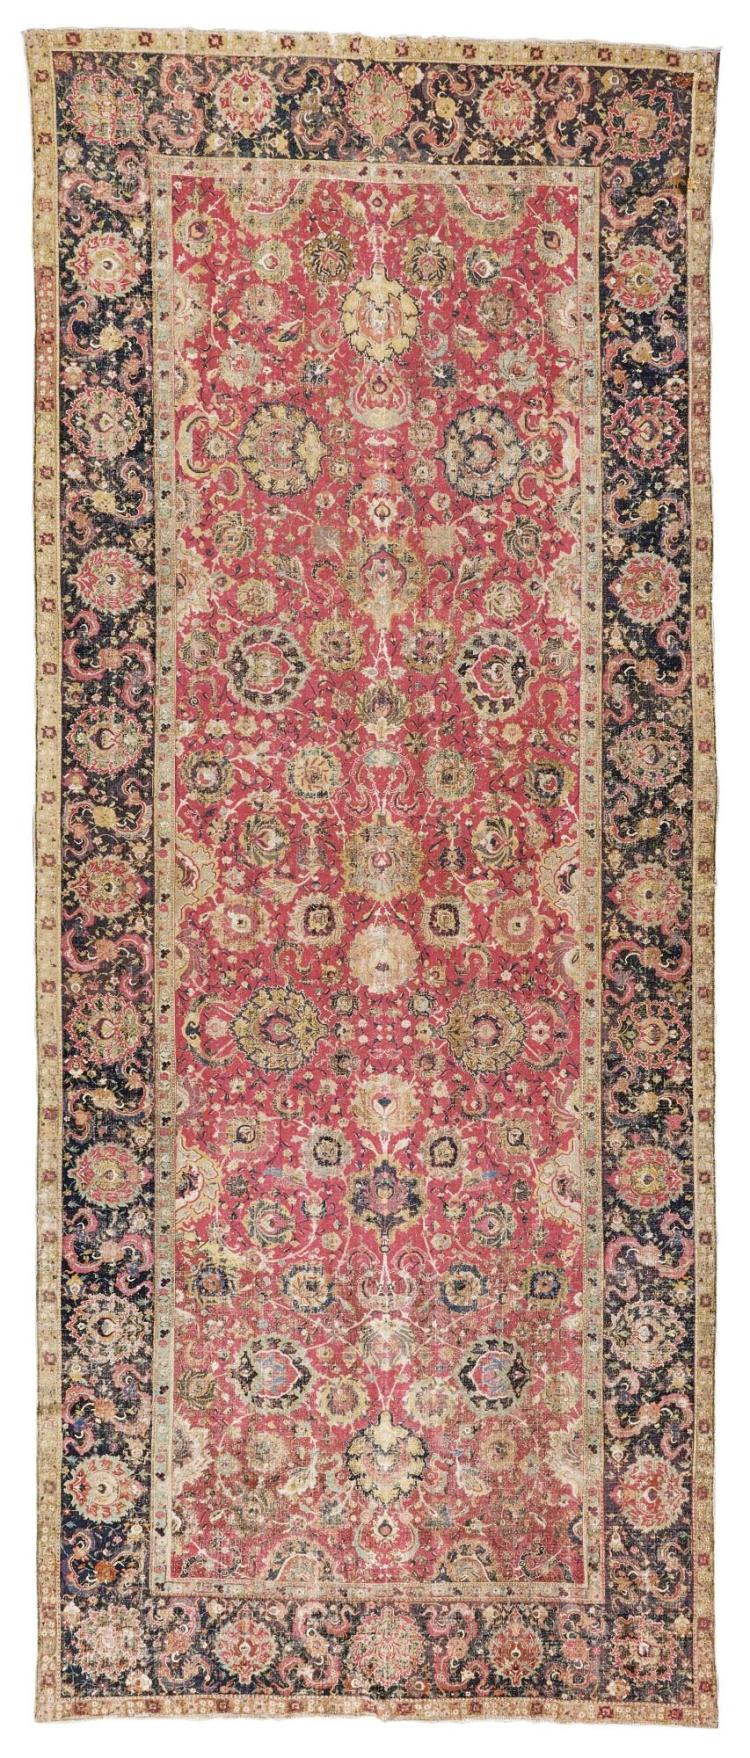 A CENTRAL PERSIAN GALLERY CARPET, POSSIBLY ISPHAHAN |